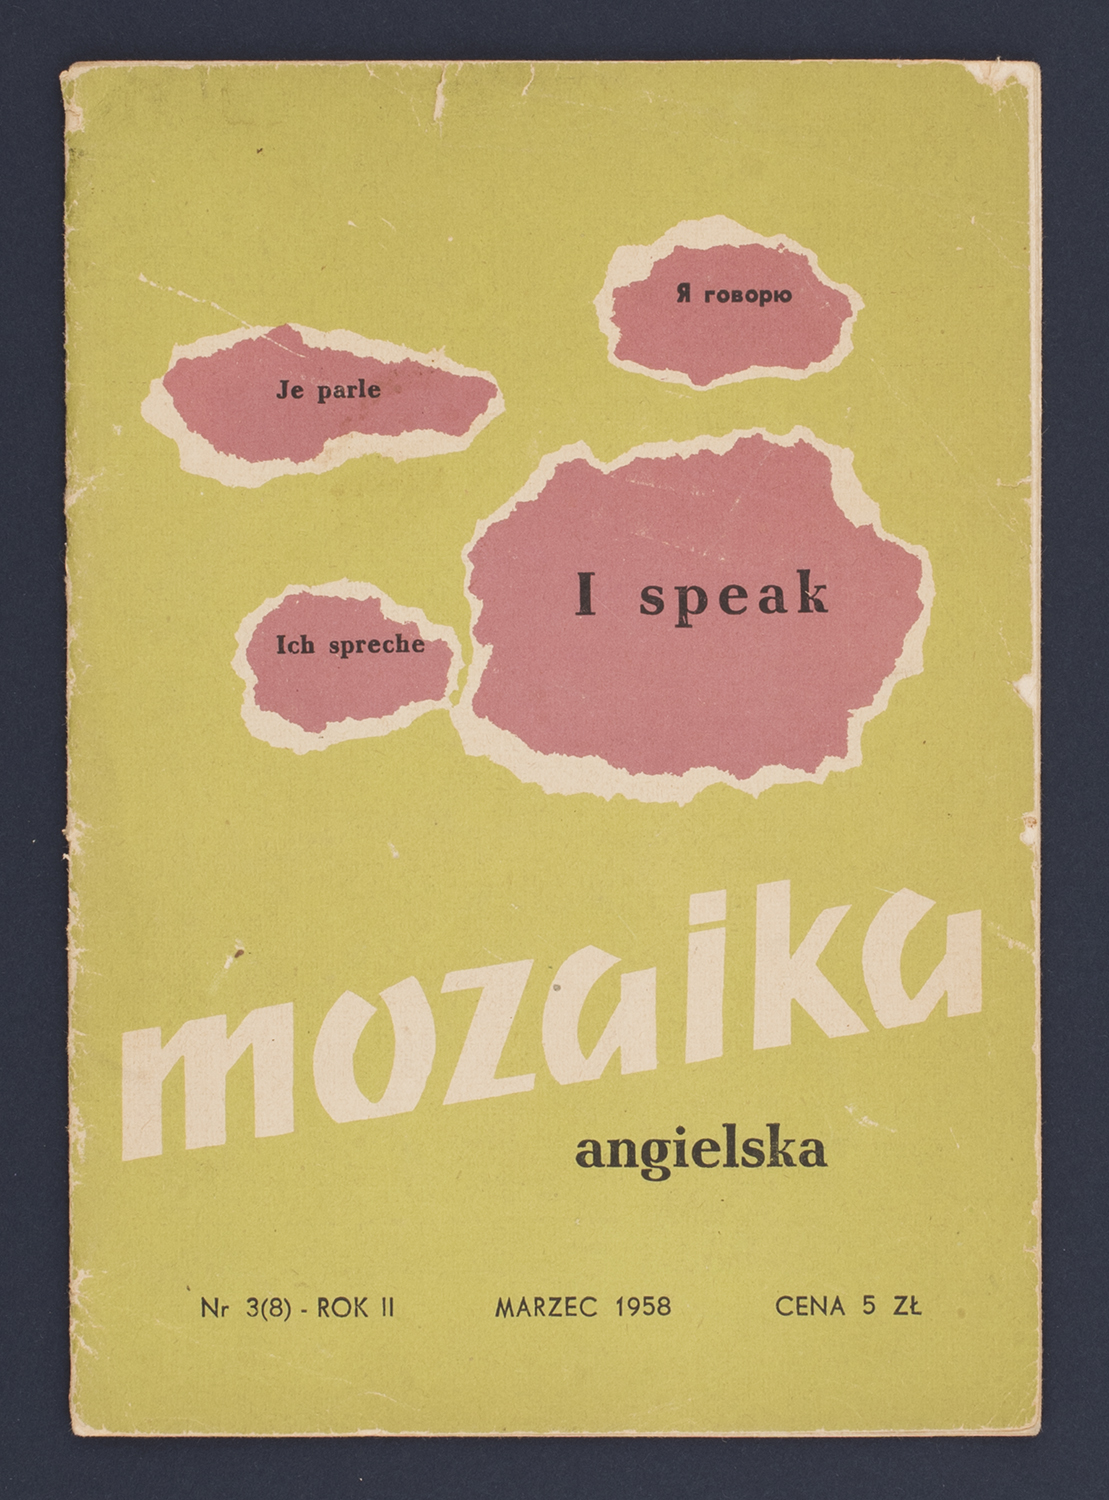 English text book, 1958, from Kraków